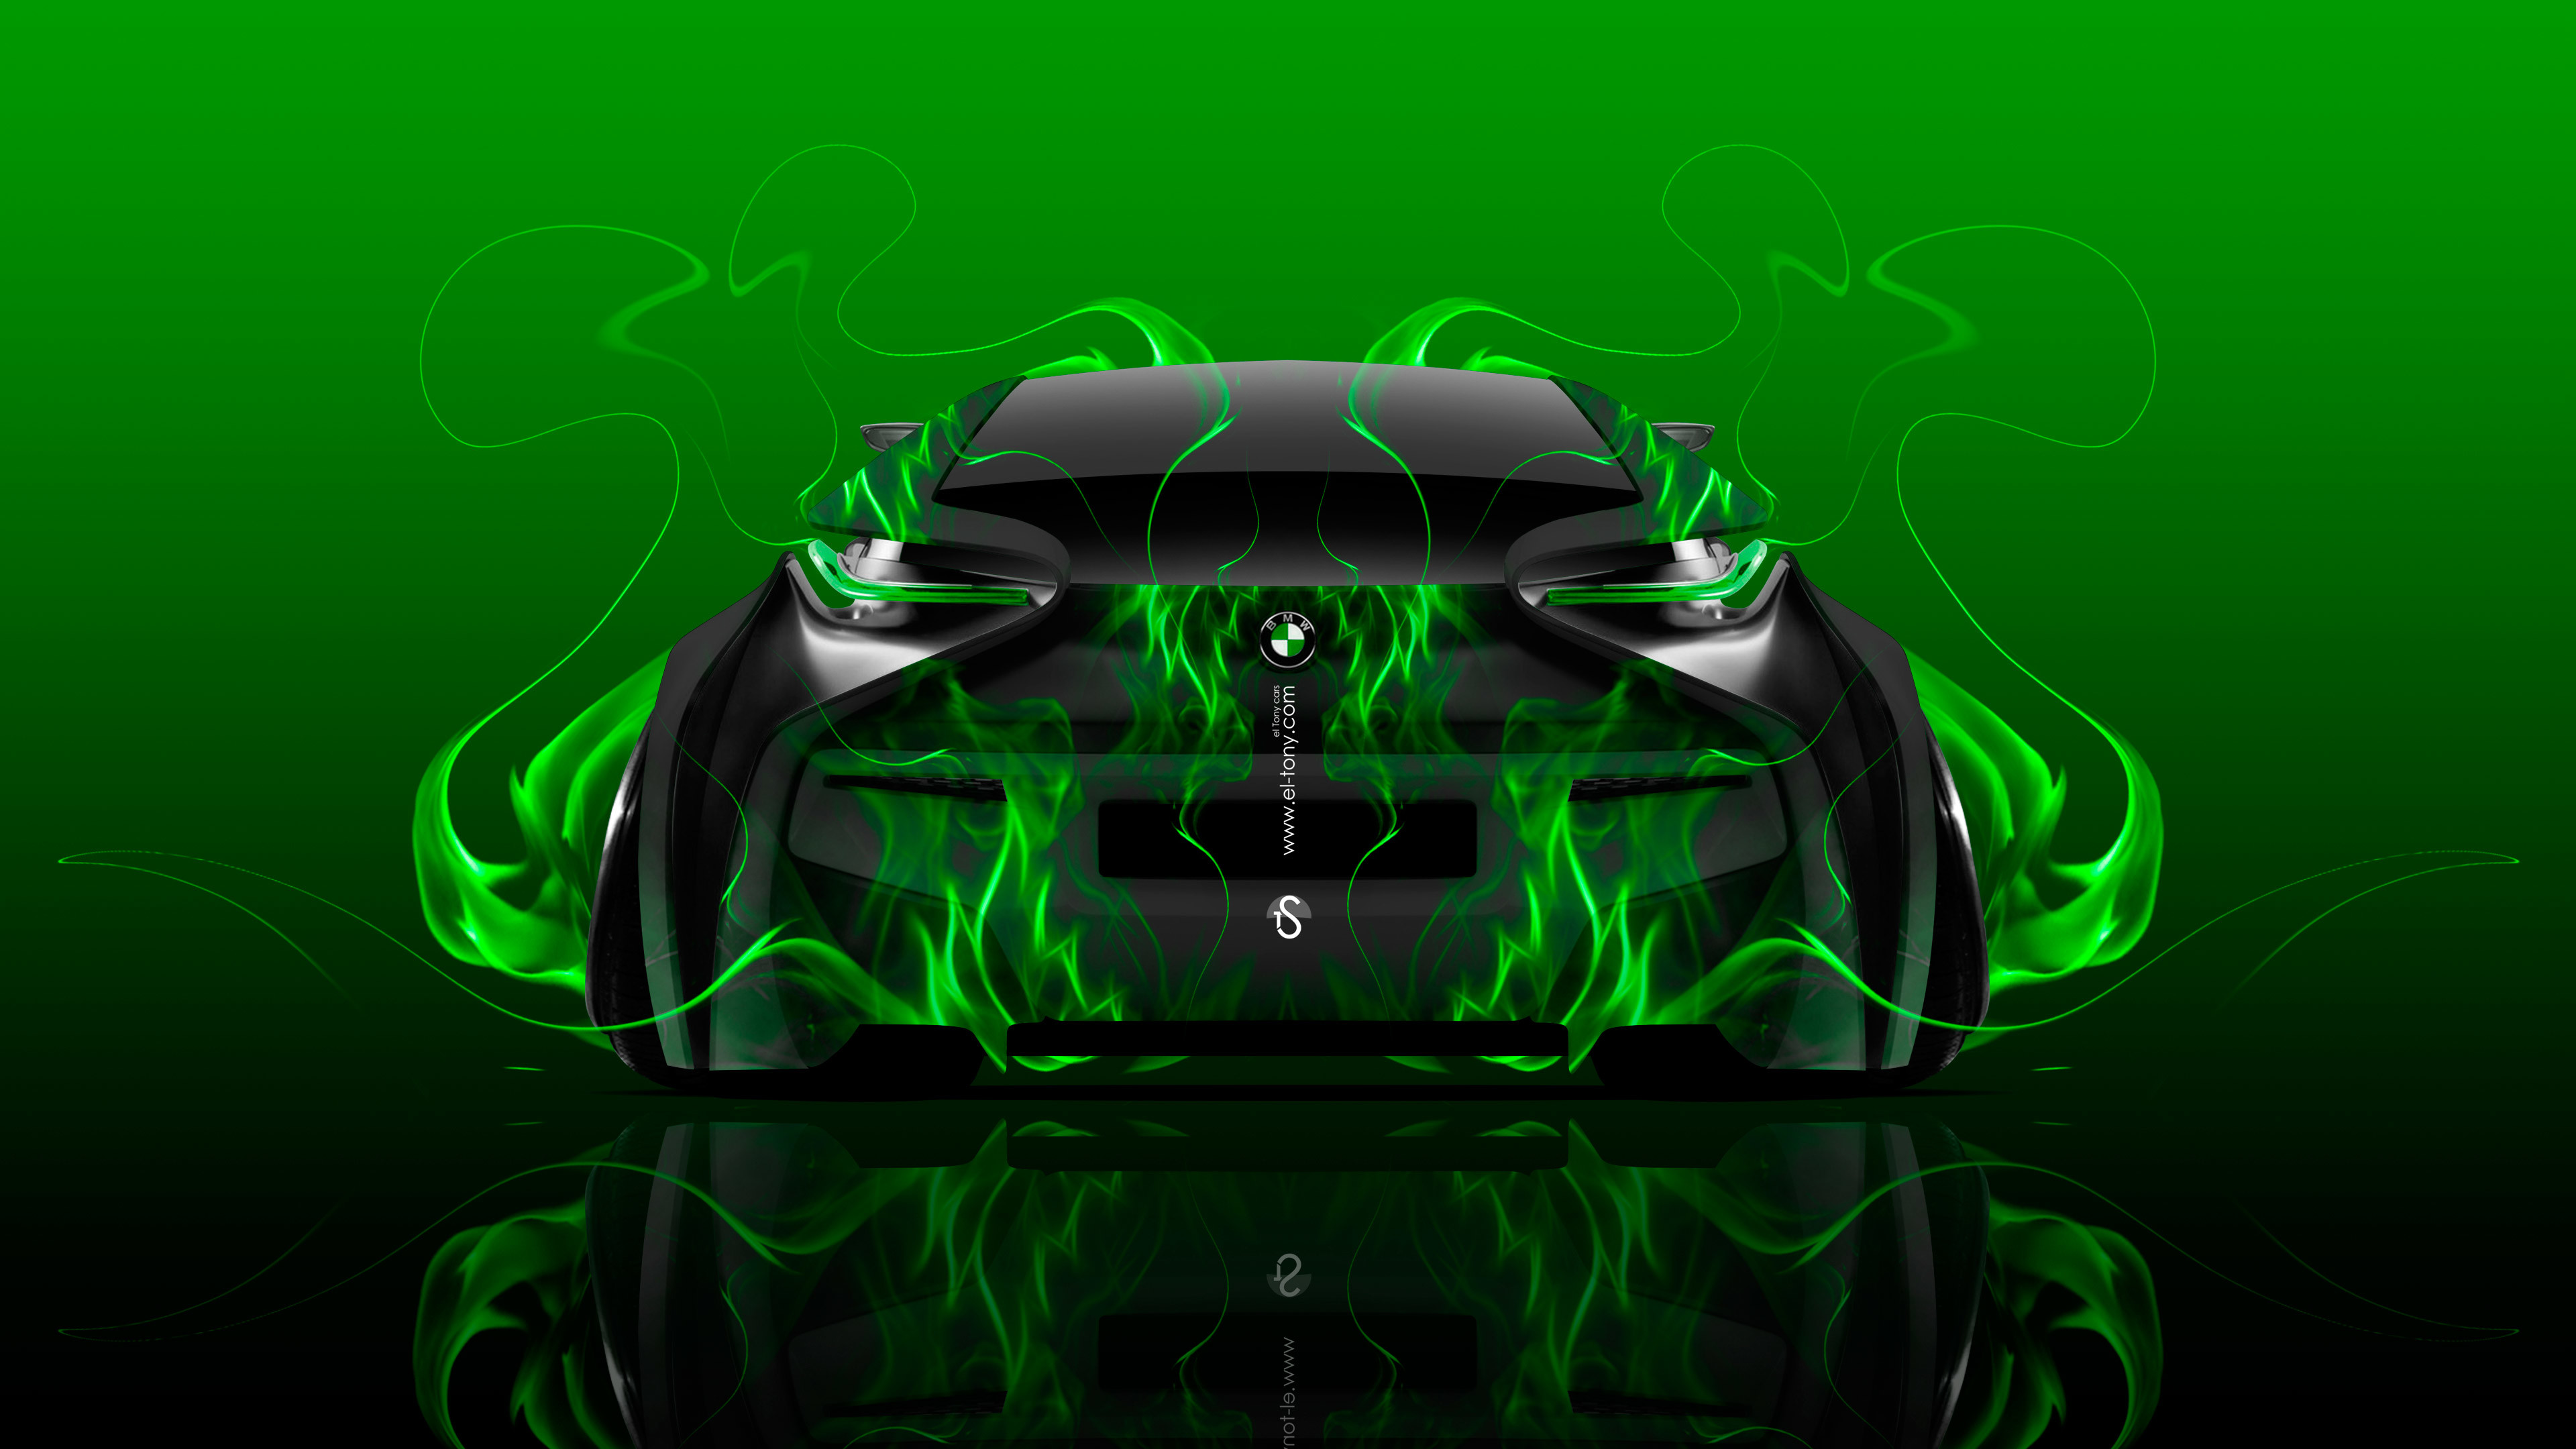 … BMW-i8-Back-Fire-Flame-Abstract-Car-2016-